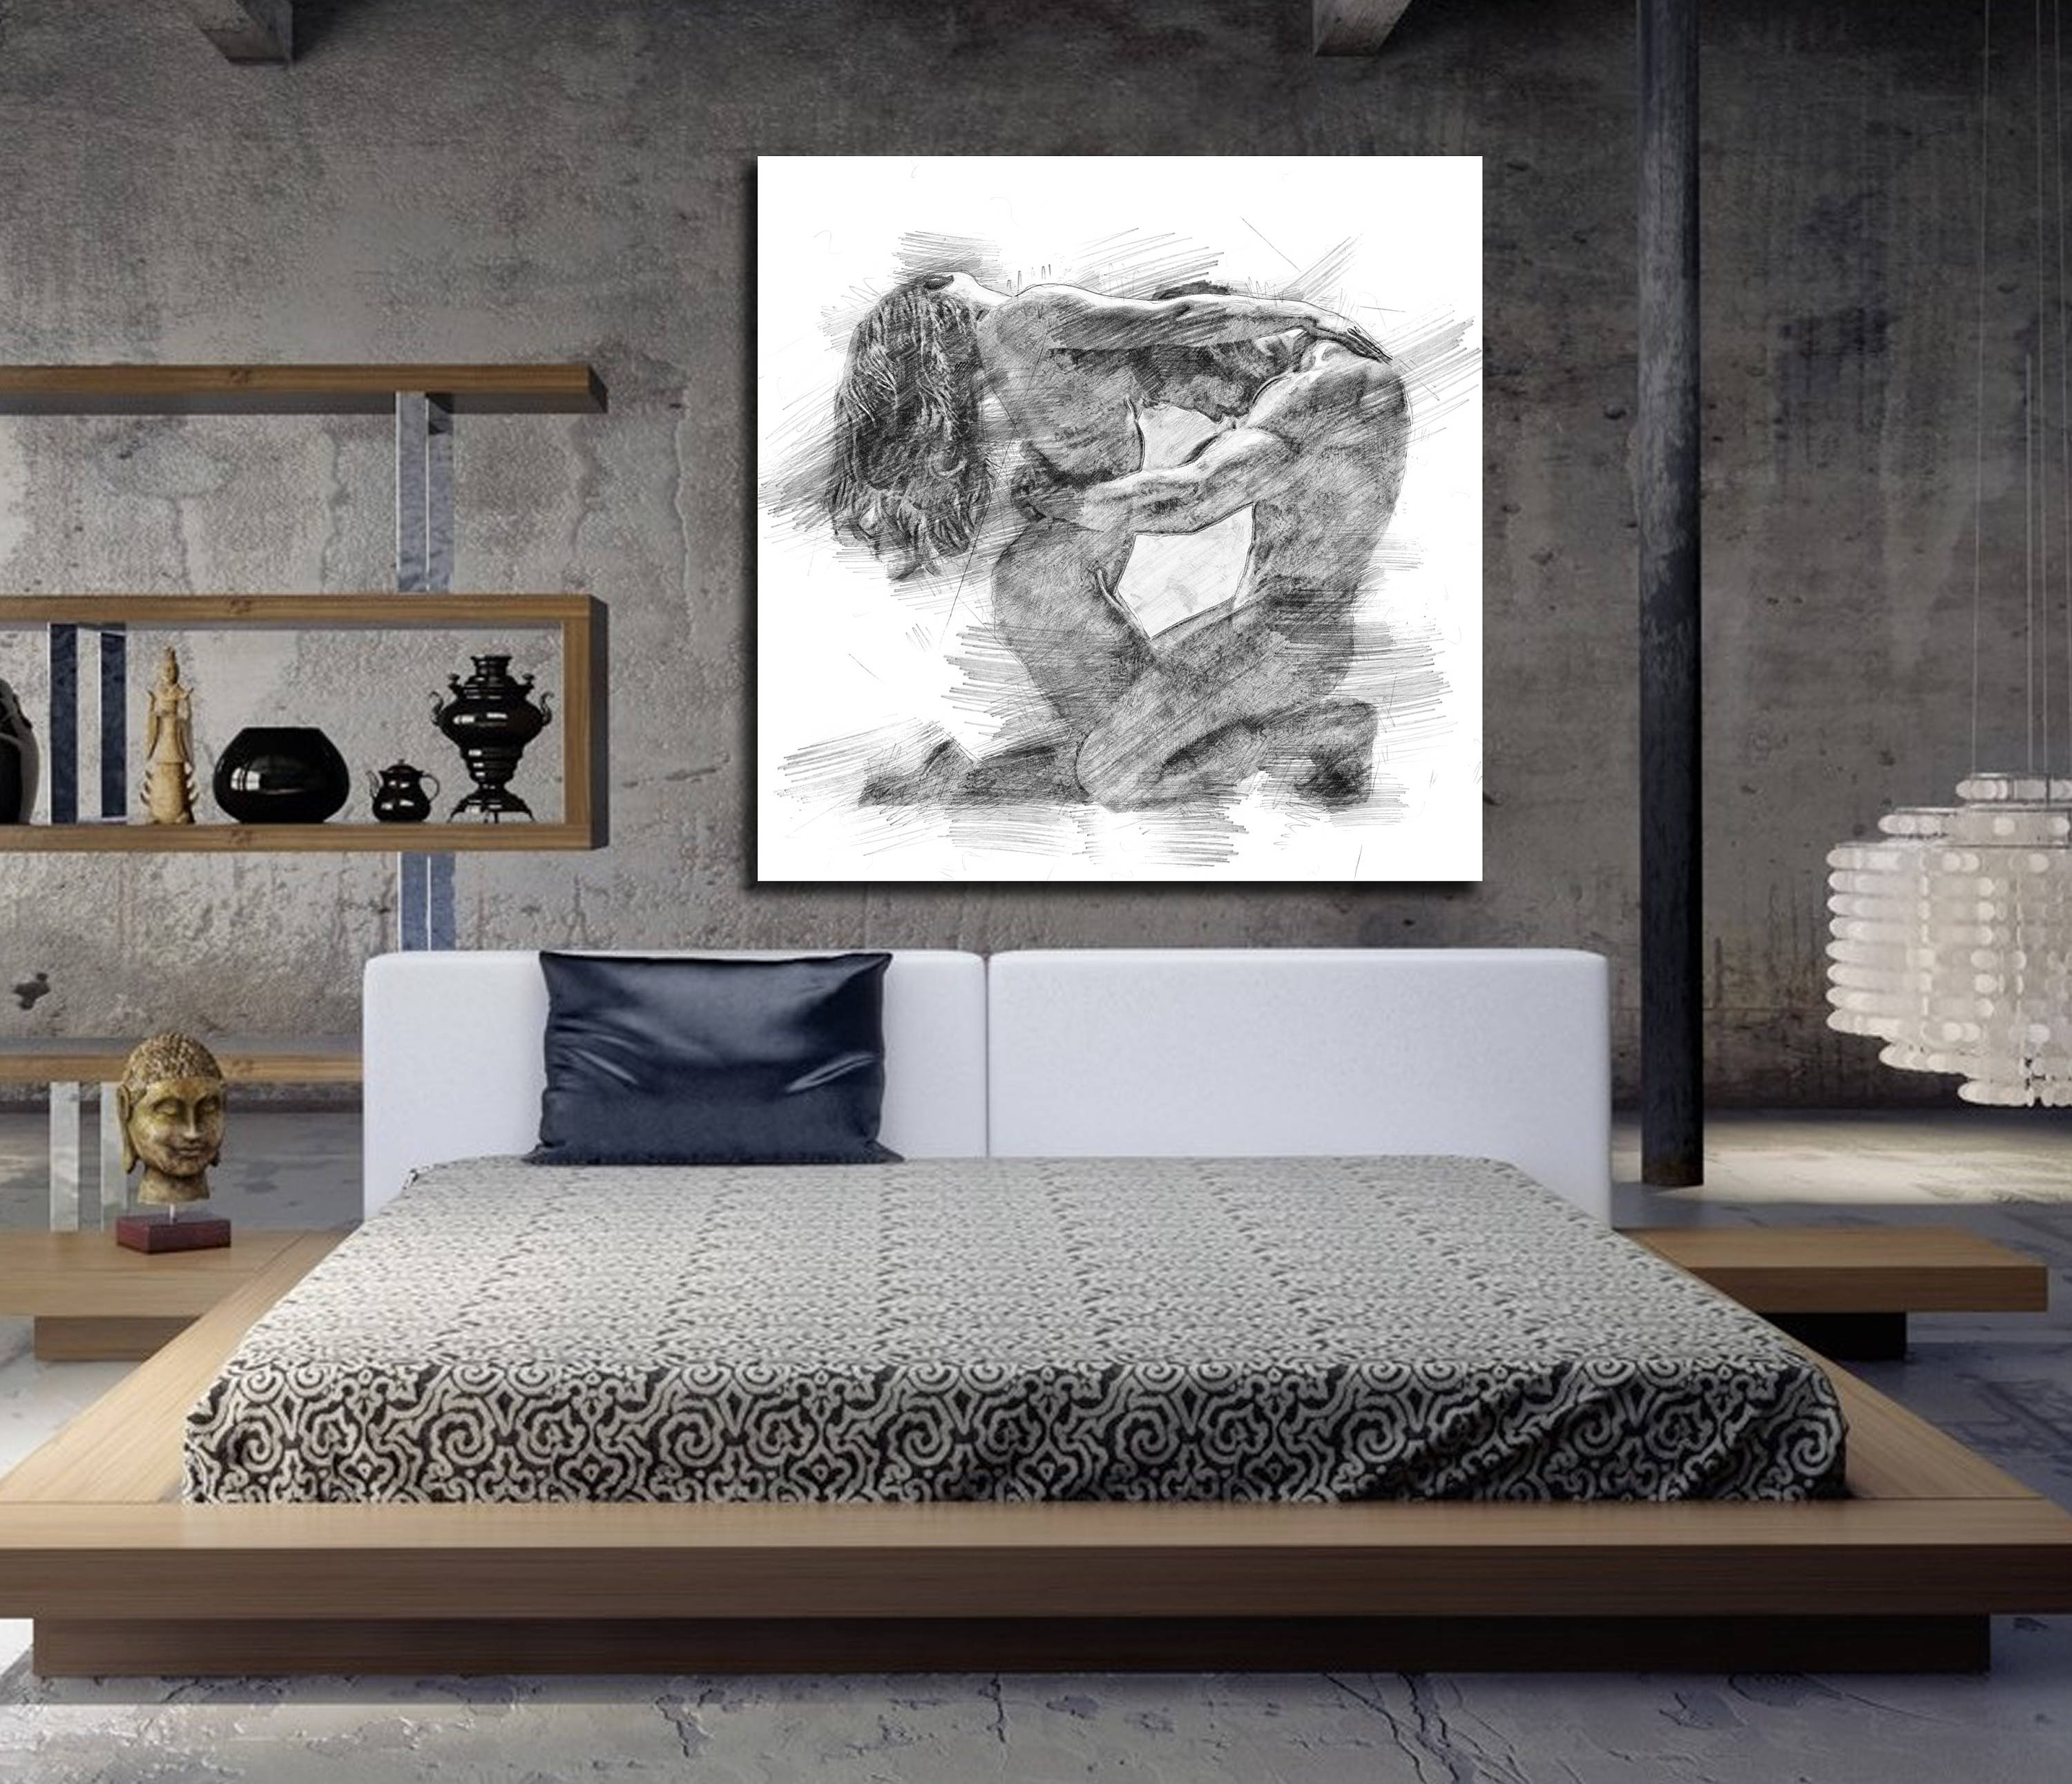 Canvas Art His & Hers Bedroom Wall Art, Abstract Art Print, Pencil Within Newest Masters Canvas Wall Art (Gallery 2 of 15)